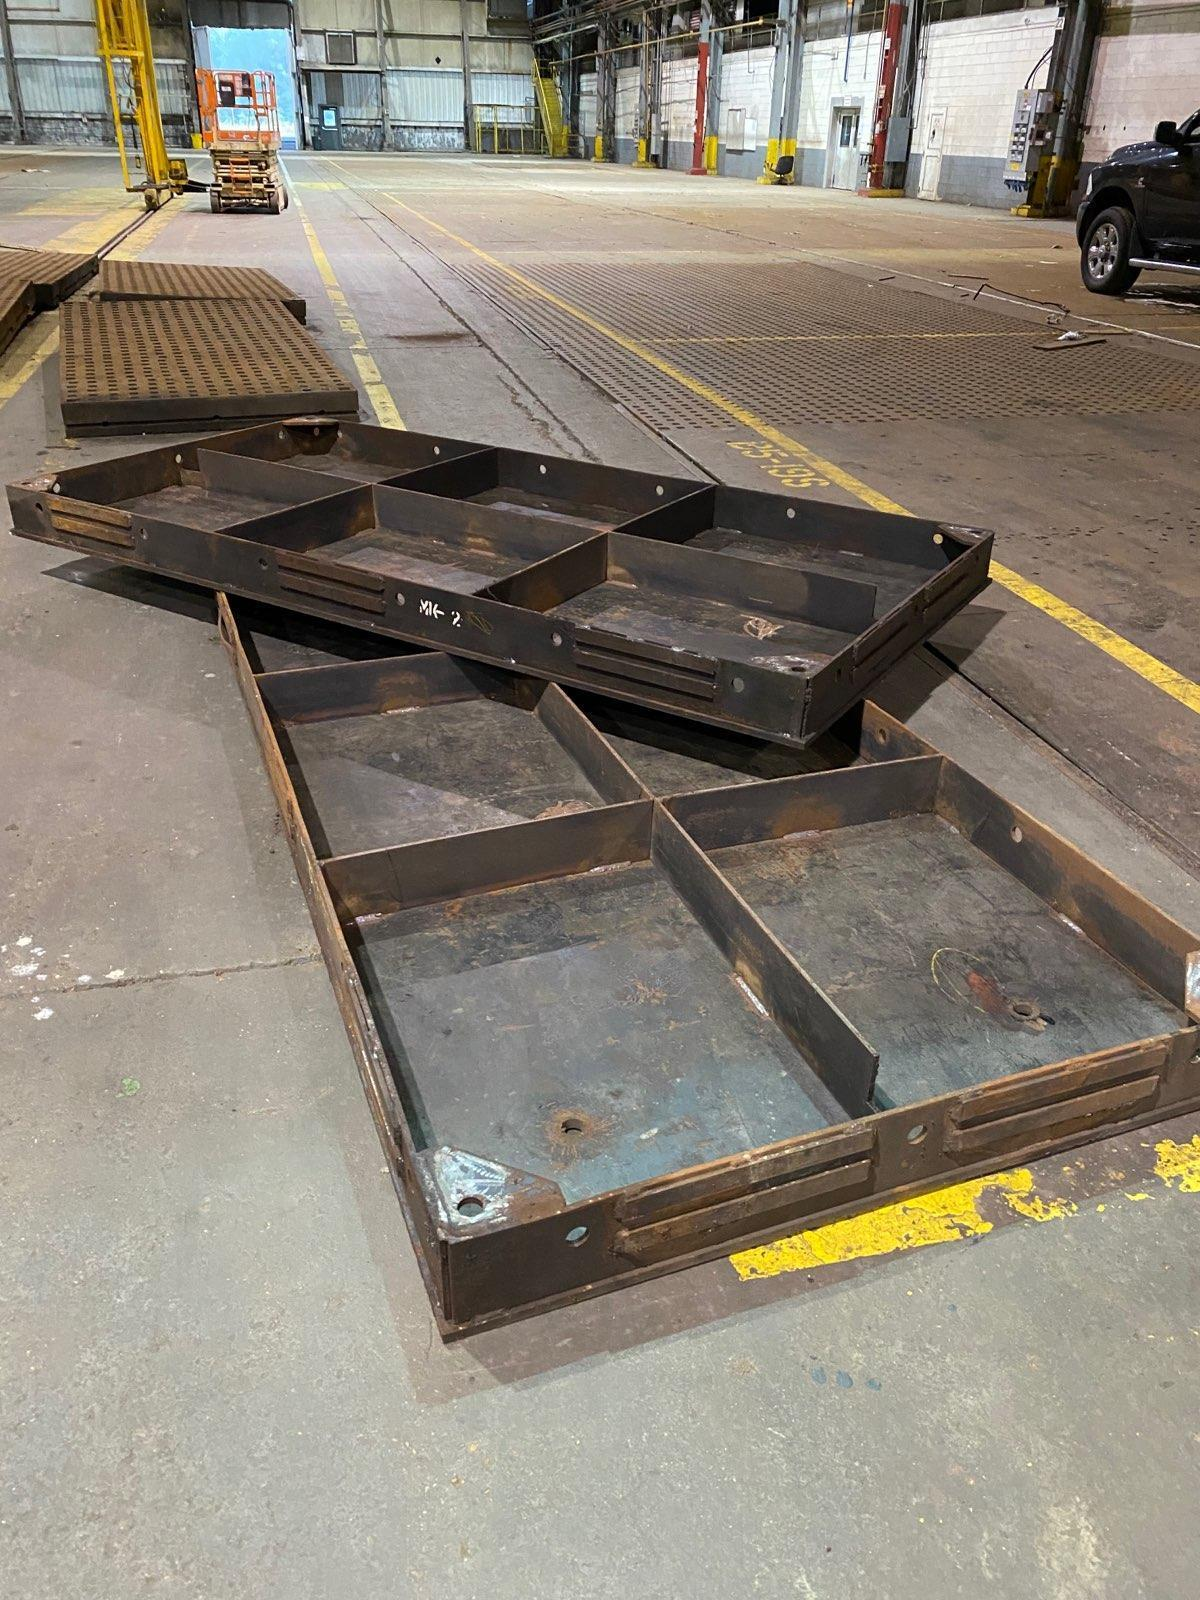 5' X 10' STEEL WELDING TABLES. STOCK # 0953420